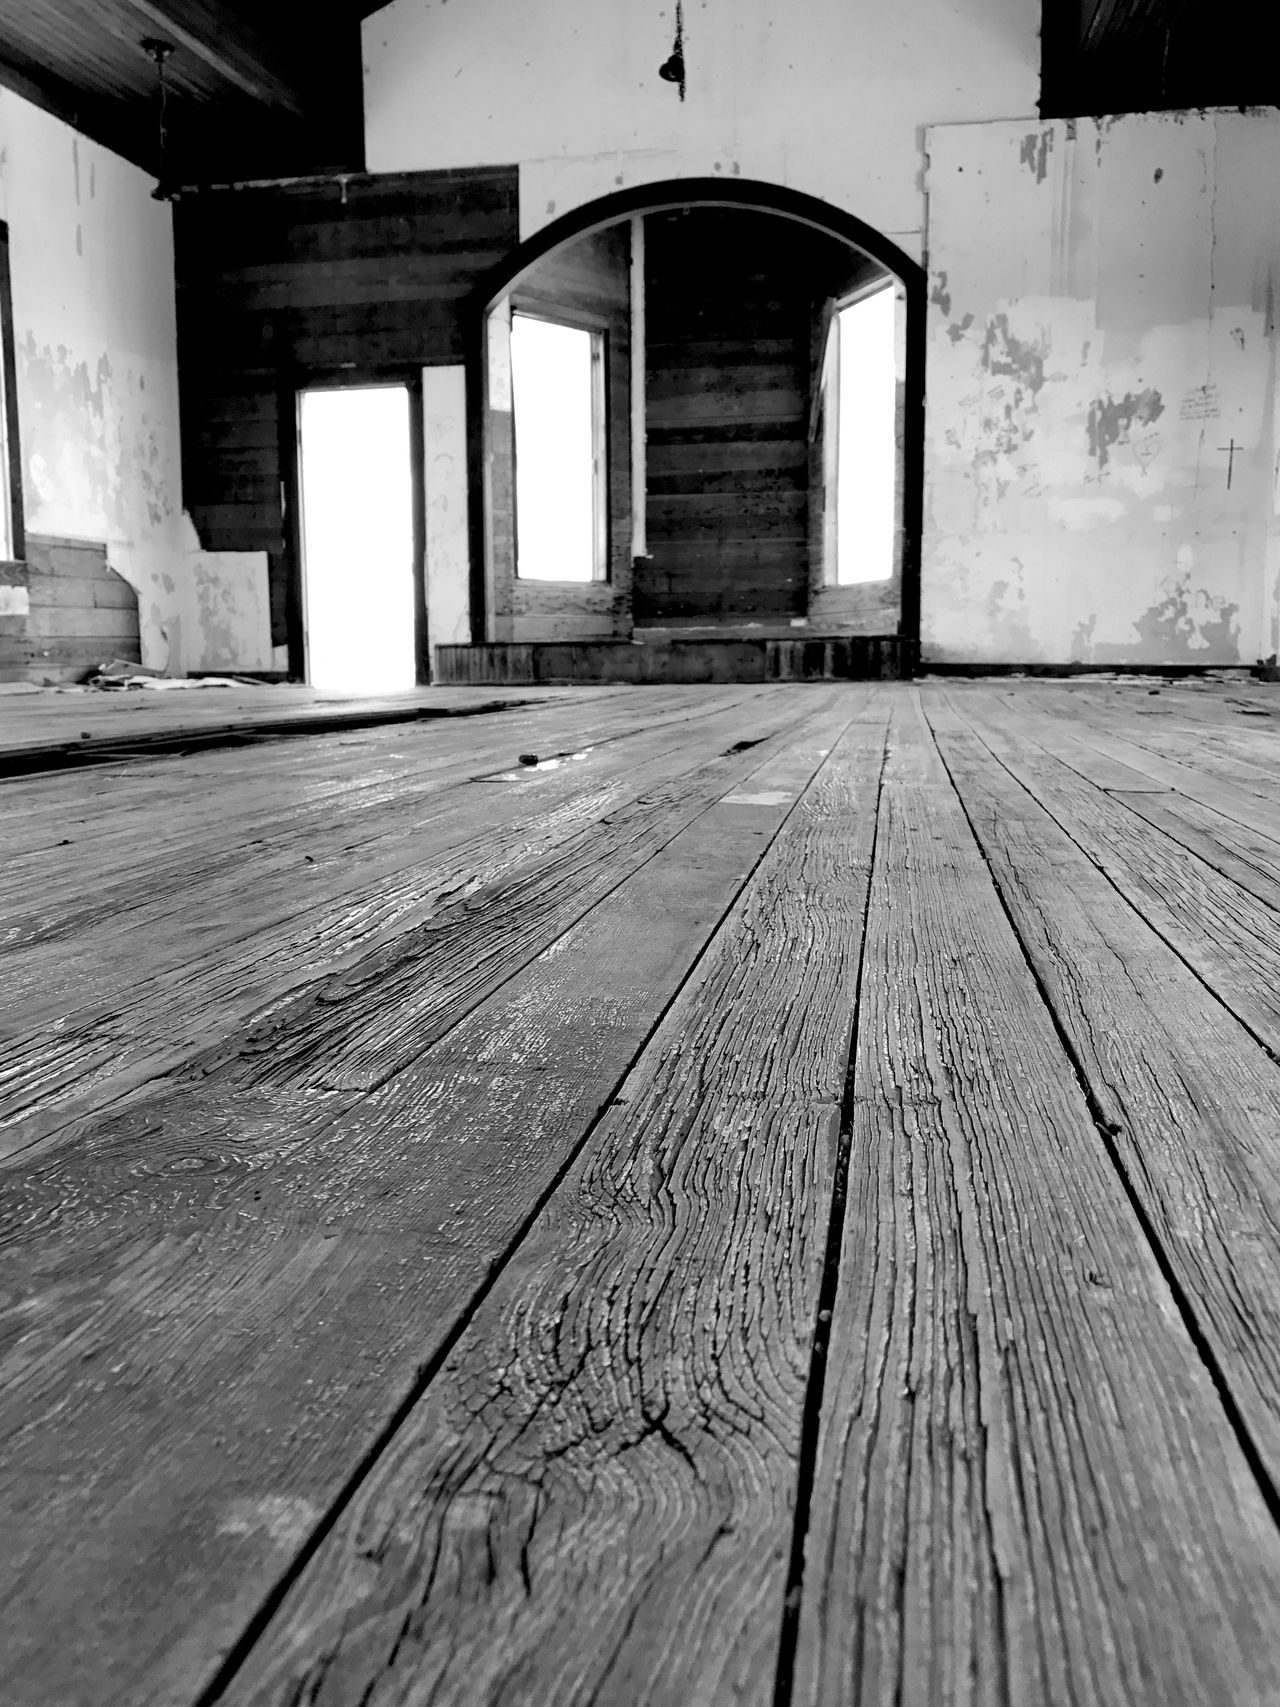 """""""Knee View"""" Sometimes on your knees is the only place you can be. The sanctuary of the long abandoned Taiban, New Mexico Presbyterian Church, built in 1908. Architecture Wood - Material Indoors  Woodfloor Church Sanctuary  Onyourknees New Mexico Abandoned Places Abandoned Ghost Town Newmexicophotography Blackandwhite Black & White Blackandwhite Photography"""